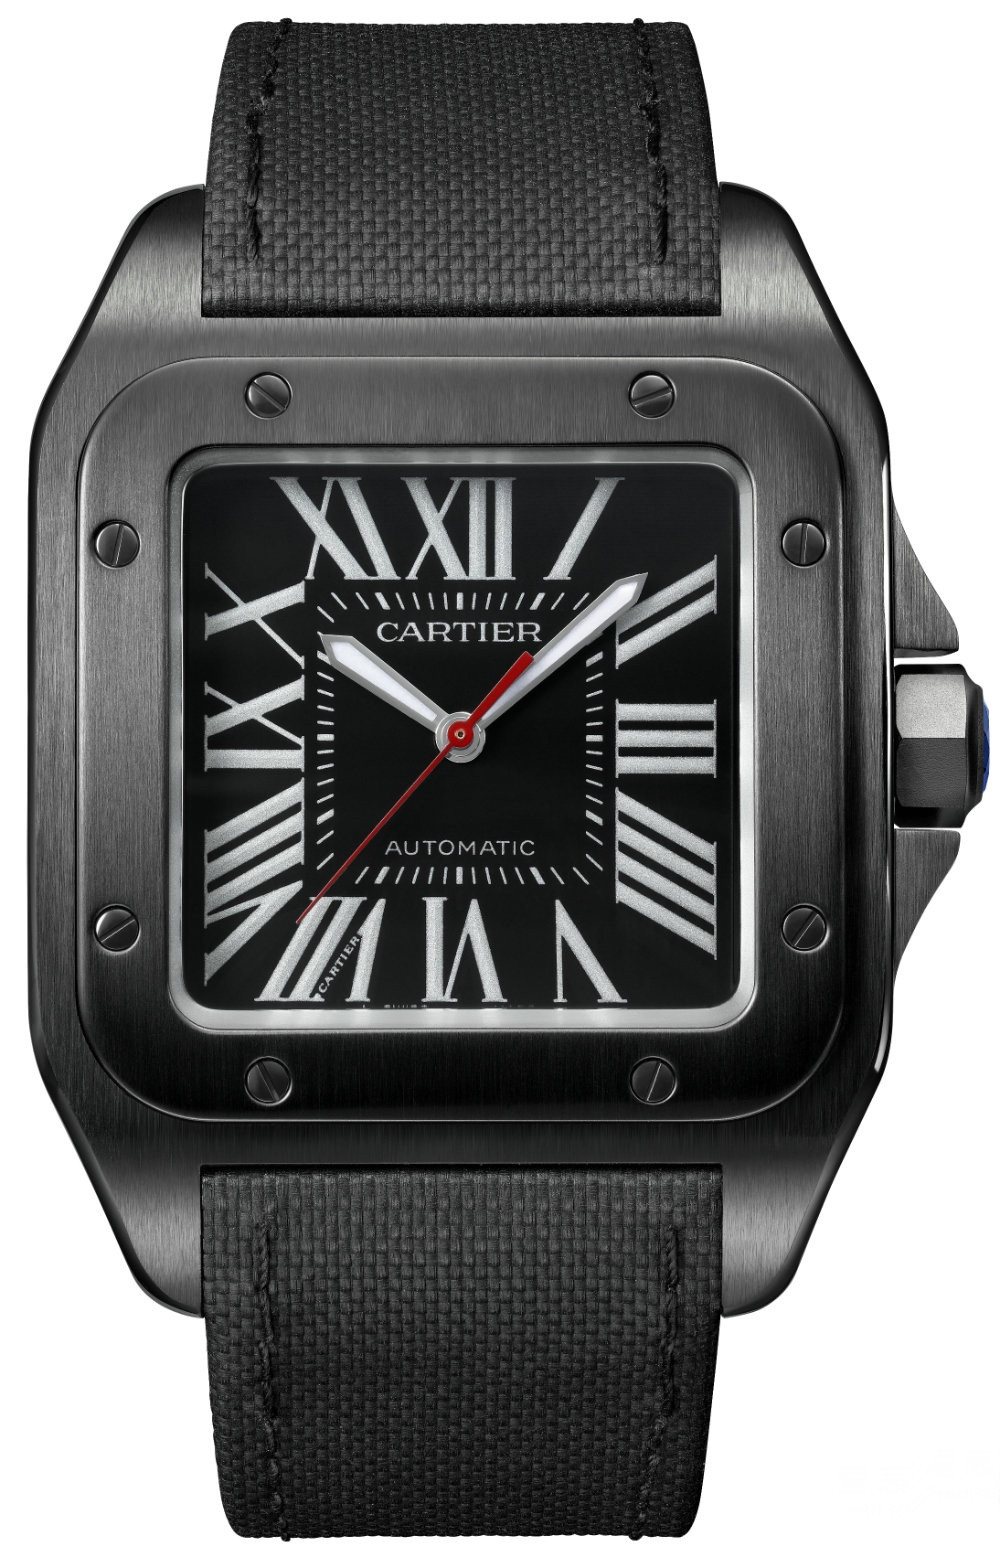 Cartier Santos 100 Carbon Replica Watches With Roman Numerals